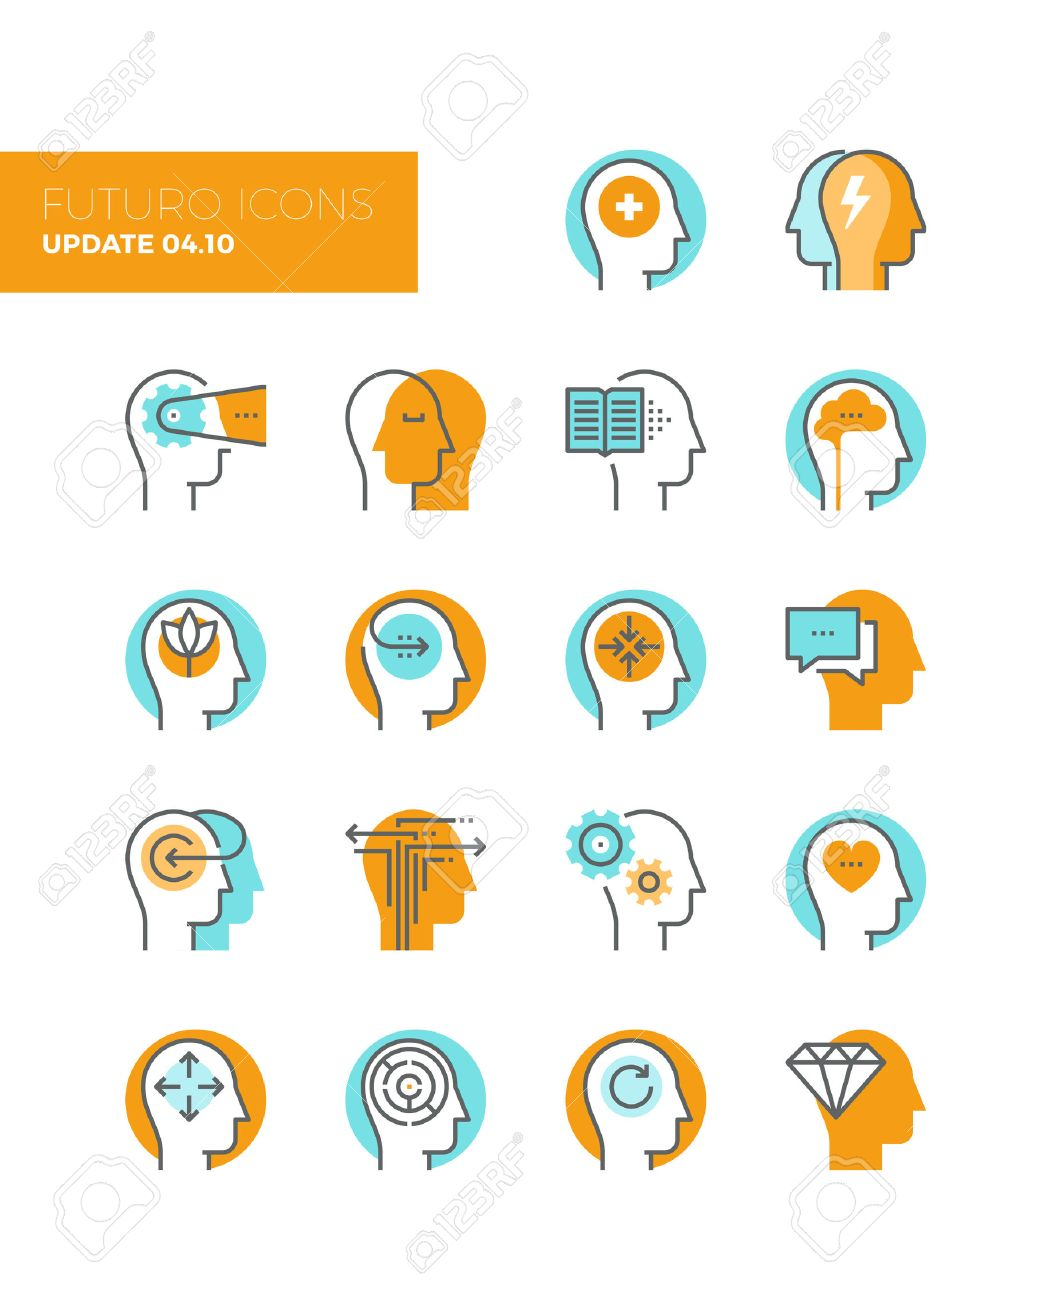 Line icons with flat design elements of mental health and autism problem, human brain process, people mind transformation, head thinking. Modern infographic vector icon pictogram collection concept. Stock Vector - 43582117